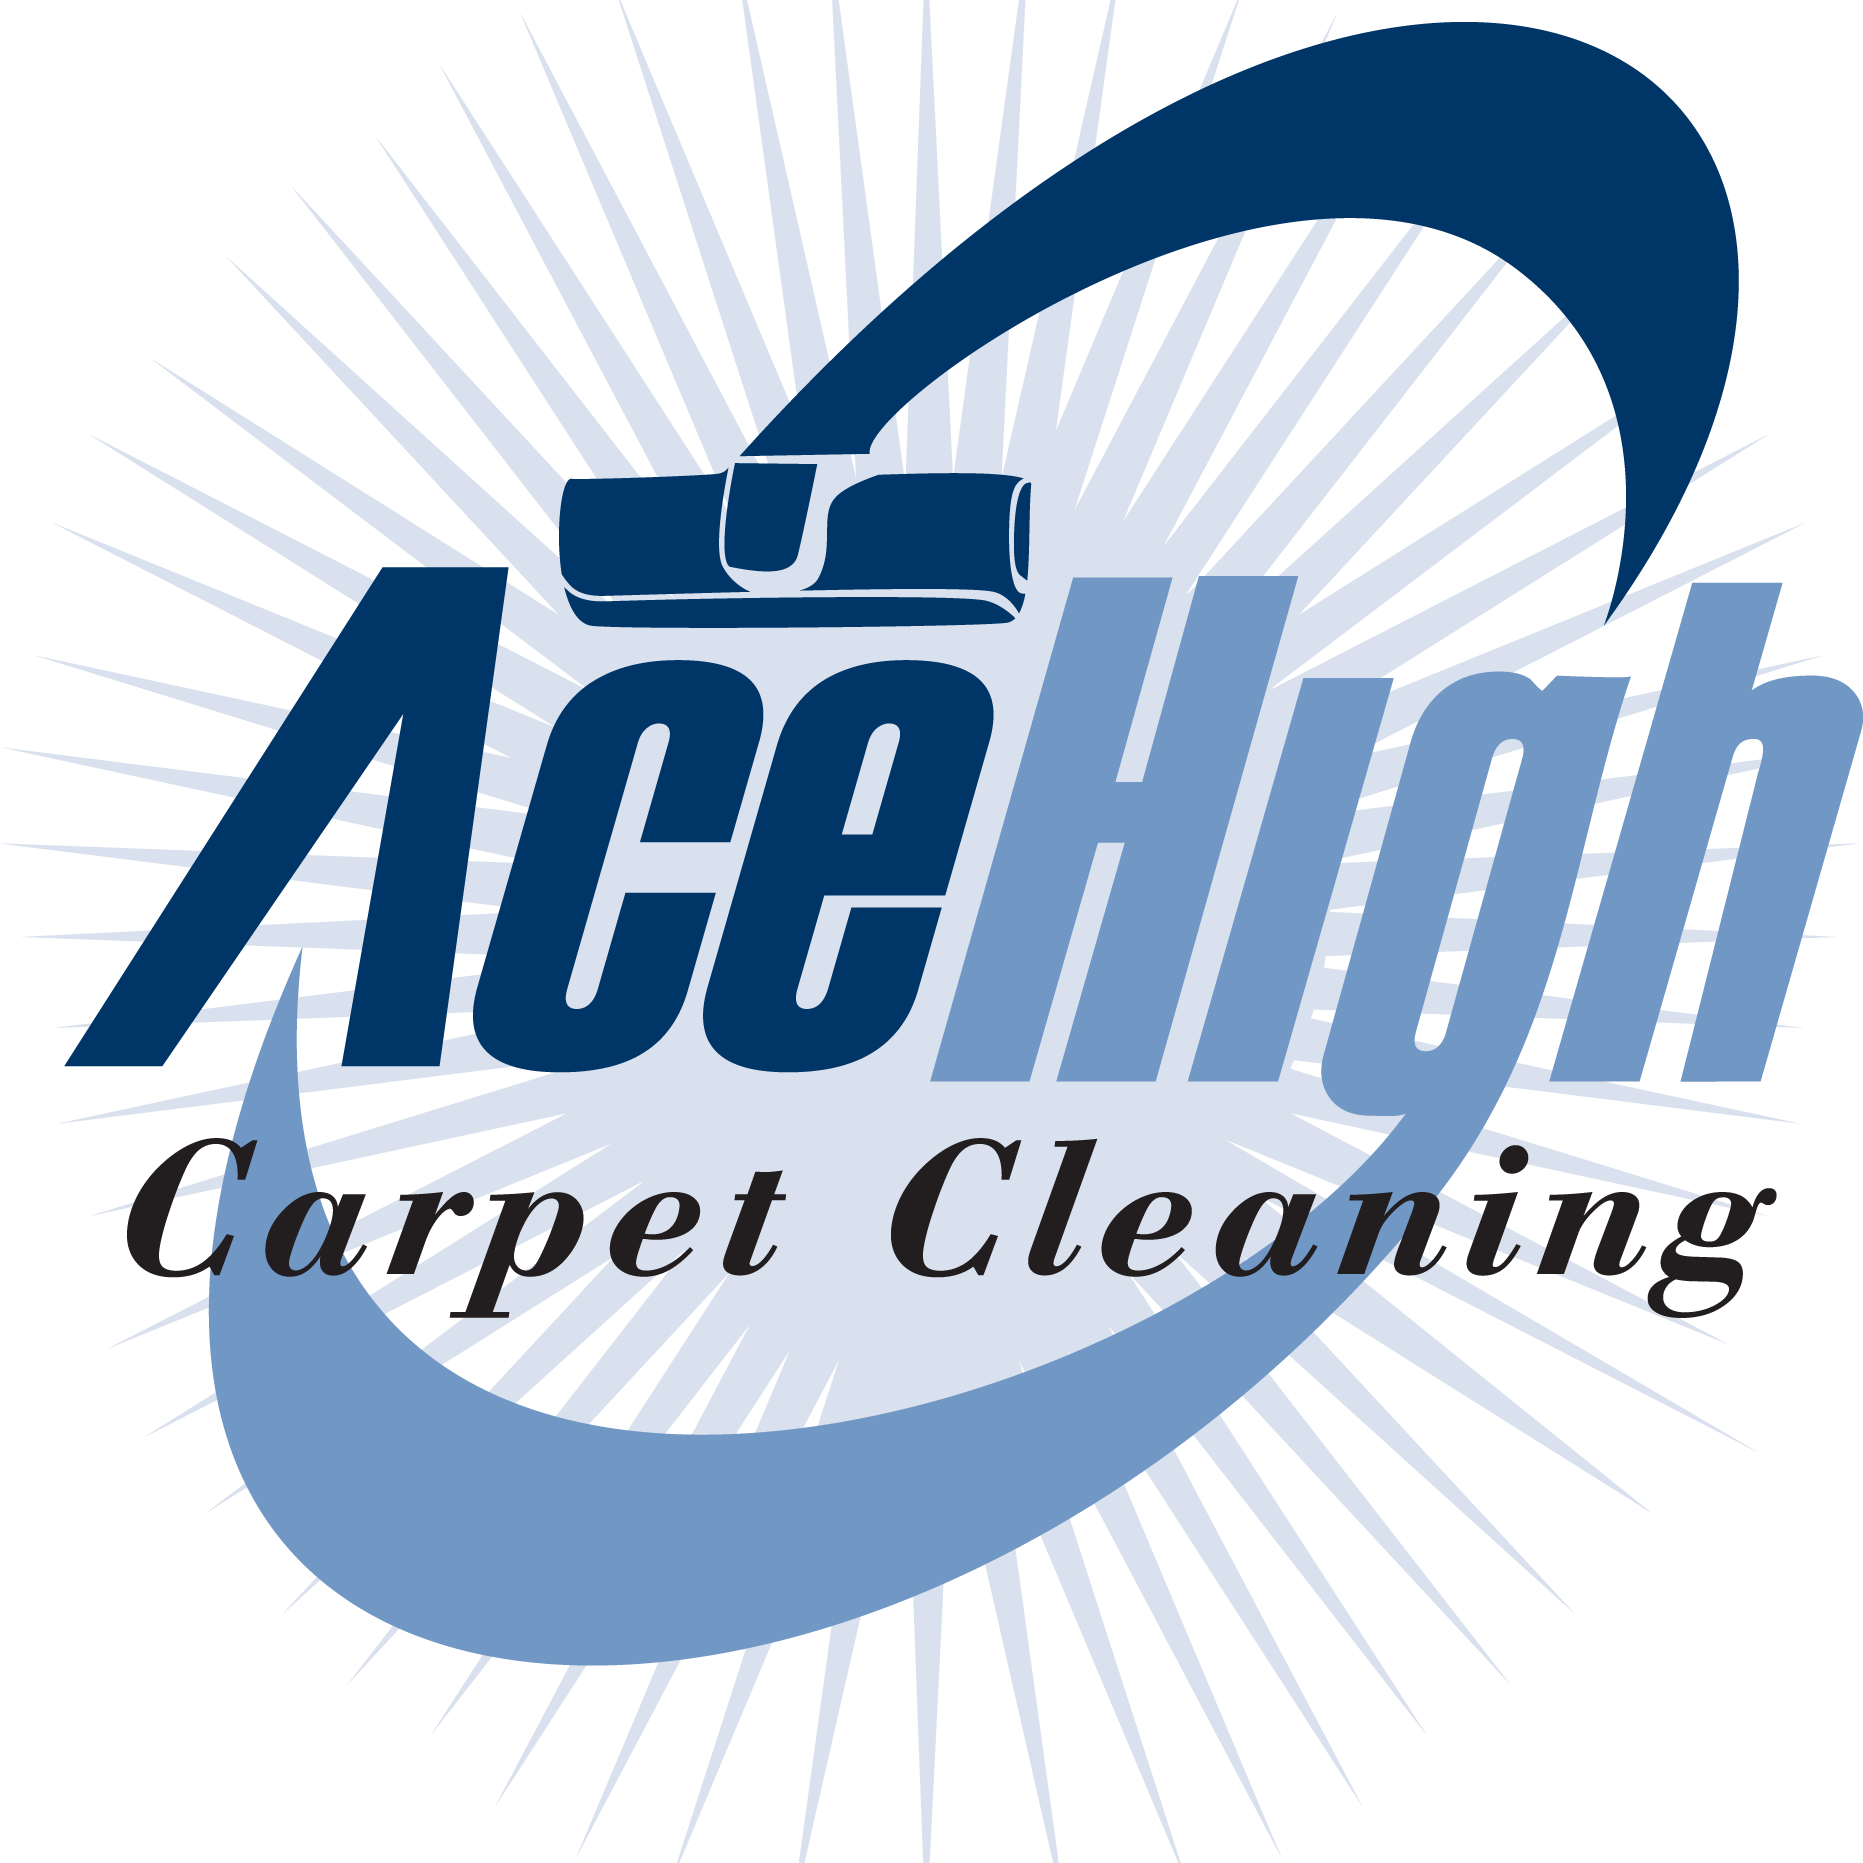 Ace High Carpet Cleaning Logo